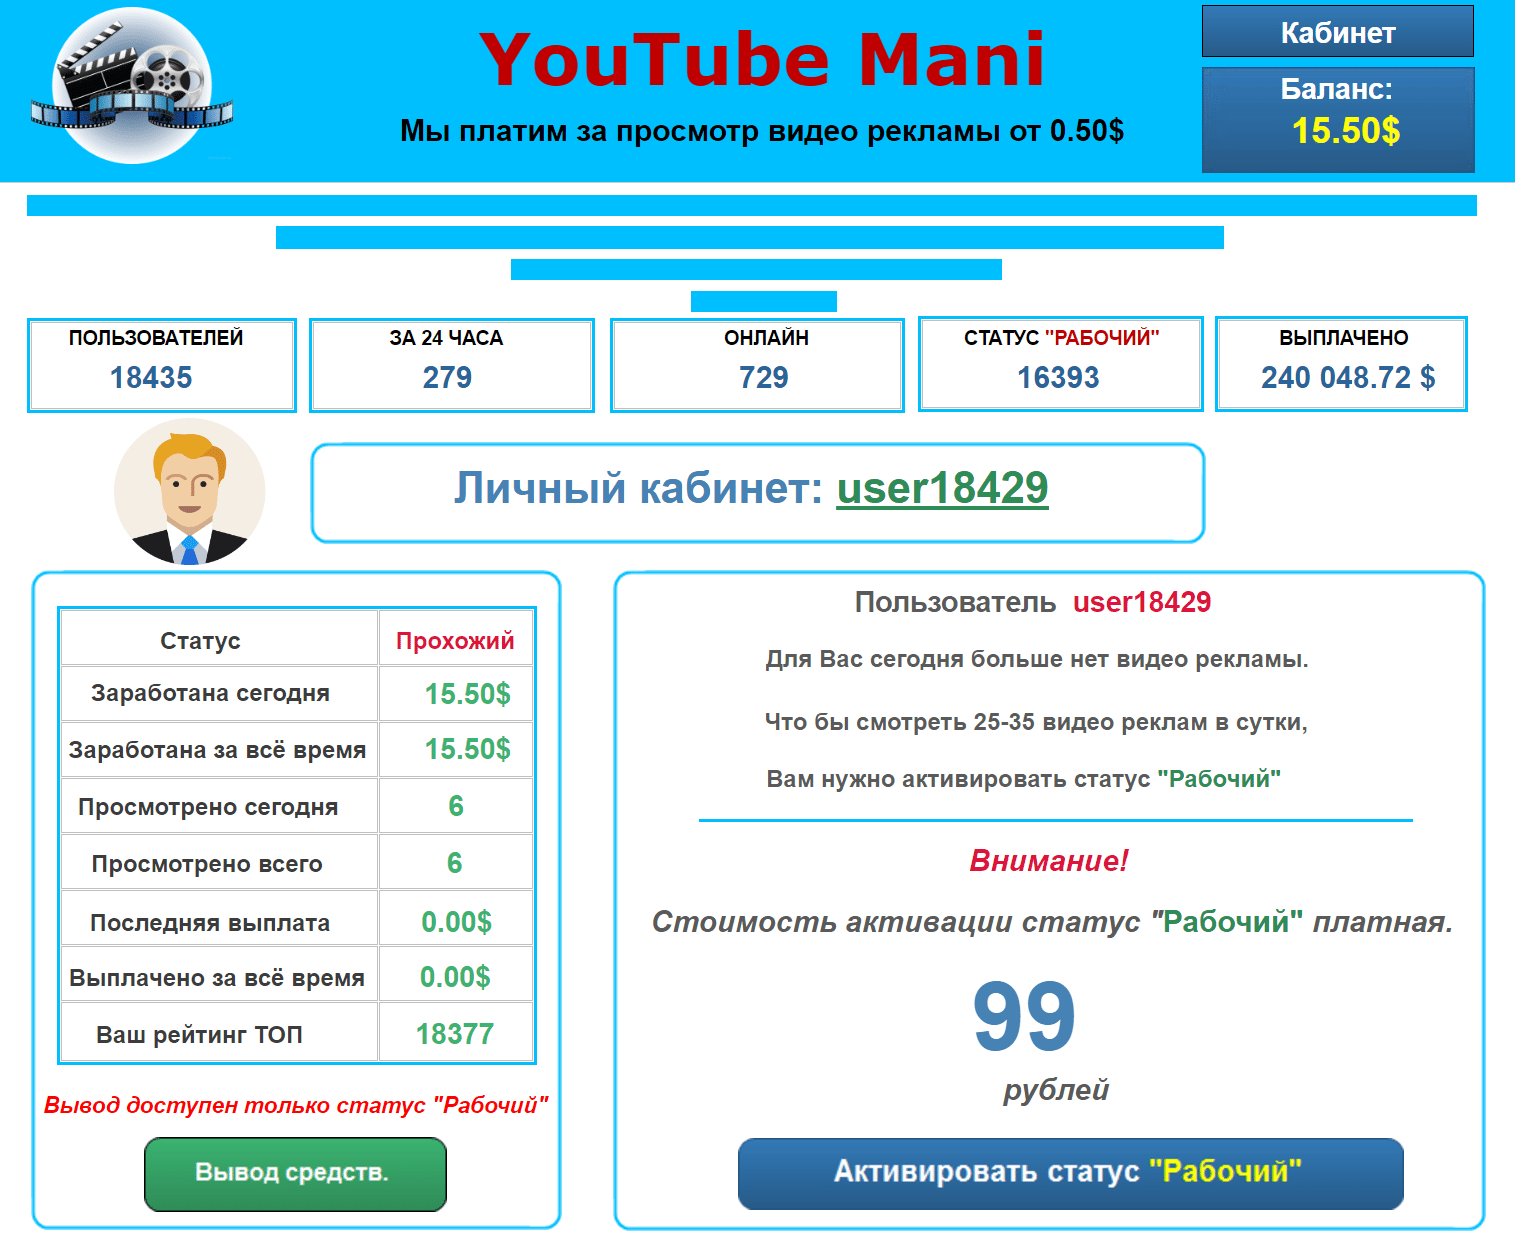 youtubemanilohotron2